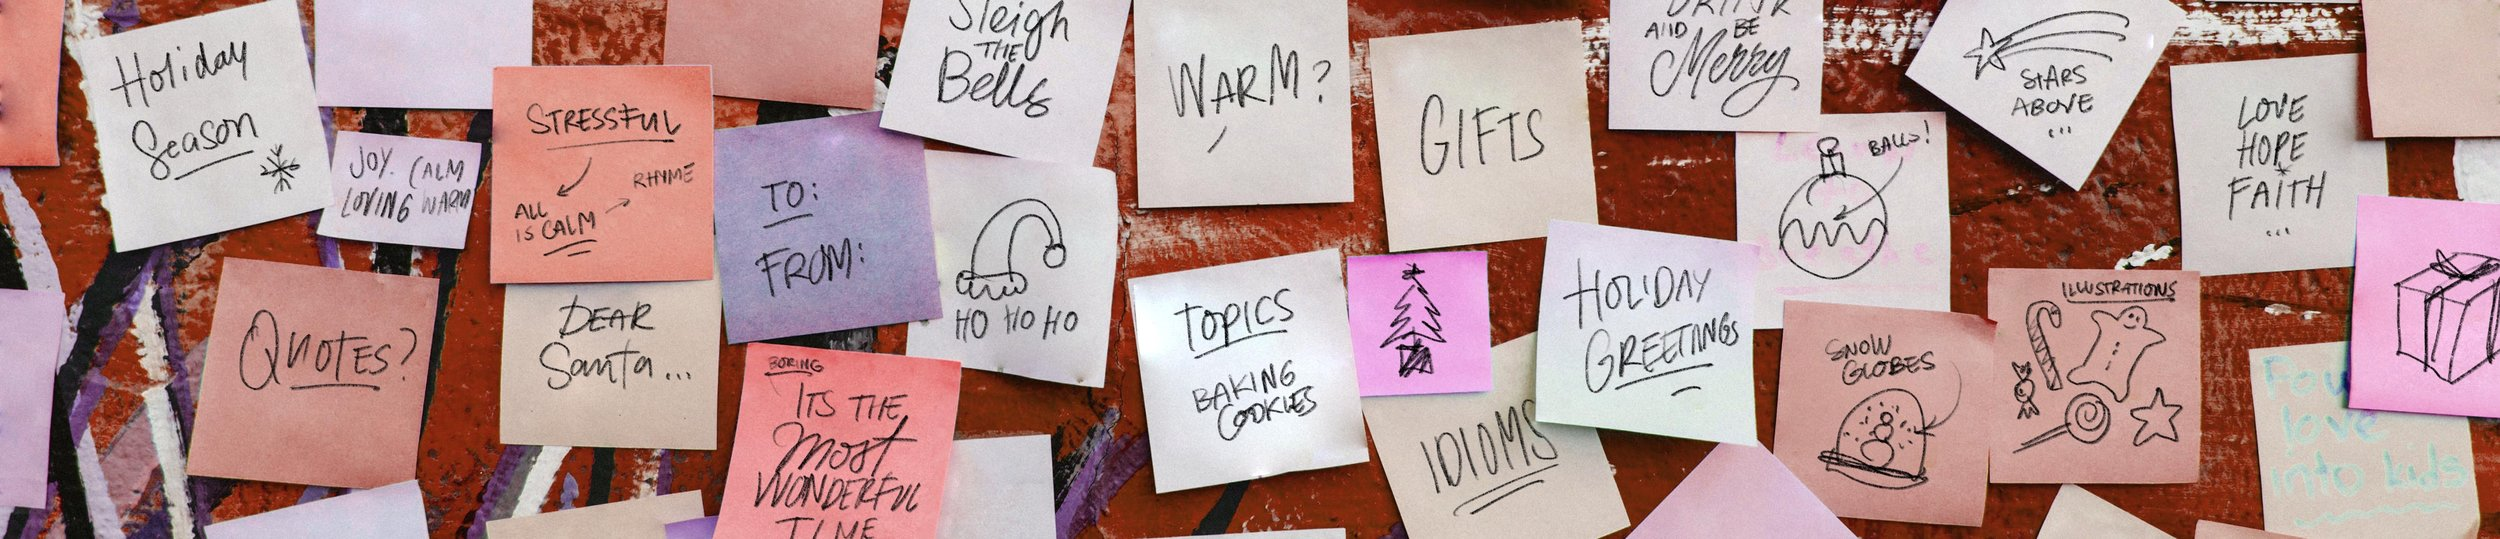 HOLIDAY QUOTES BRAINSTORMING.jpg